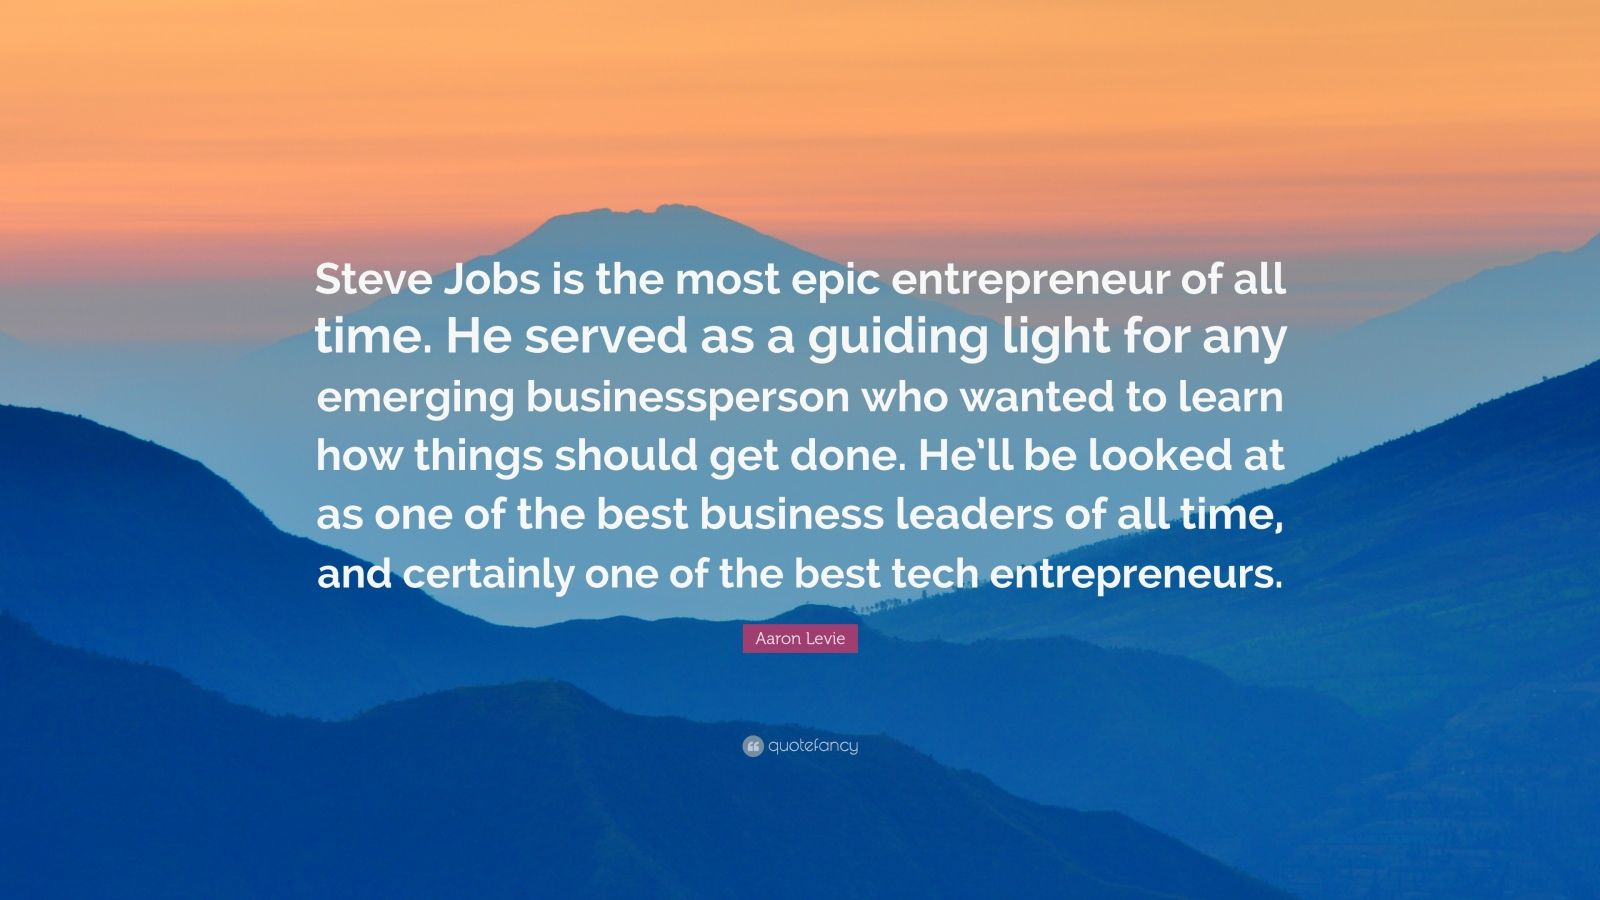 "Aaron Levie Quote: ""Steve Jobs is the most epic entrepreneur of all time. He served as a guiding light for any emerging businessperson who wanted to learn how things should get done. He'll be looked at as one of the best business leaders of all time, and certainly one of the best tech entrepreneurs."""